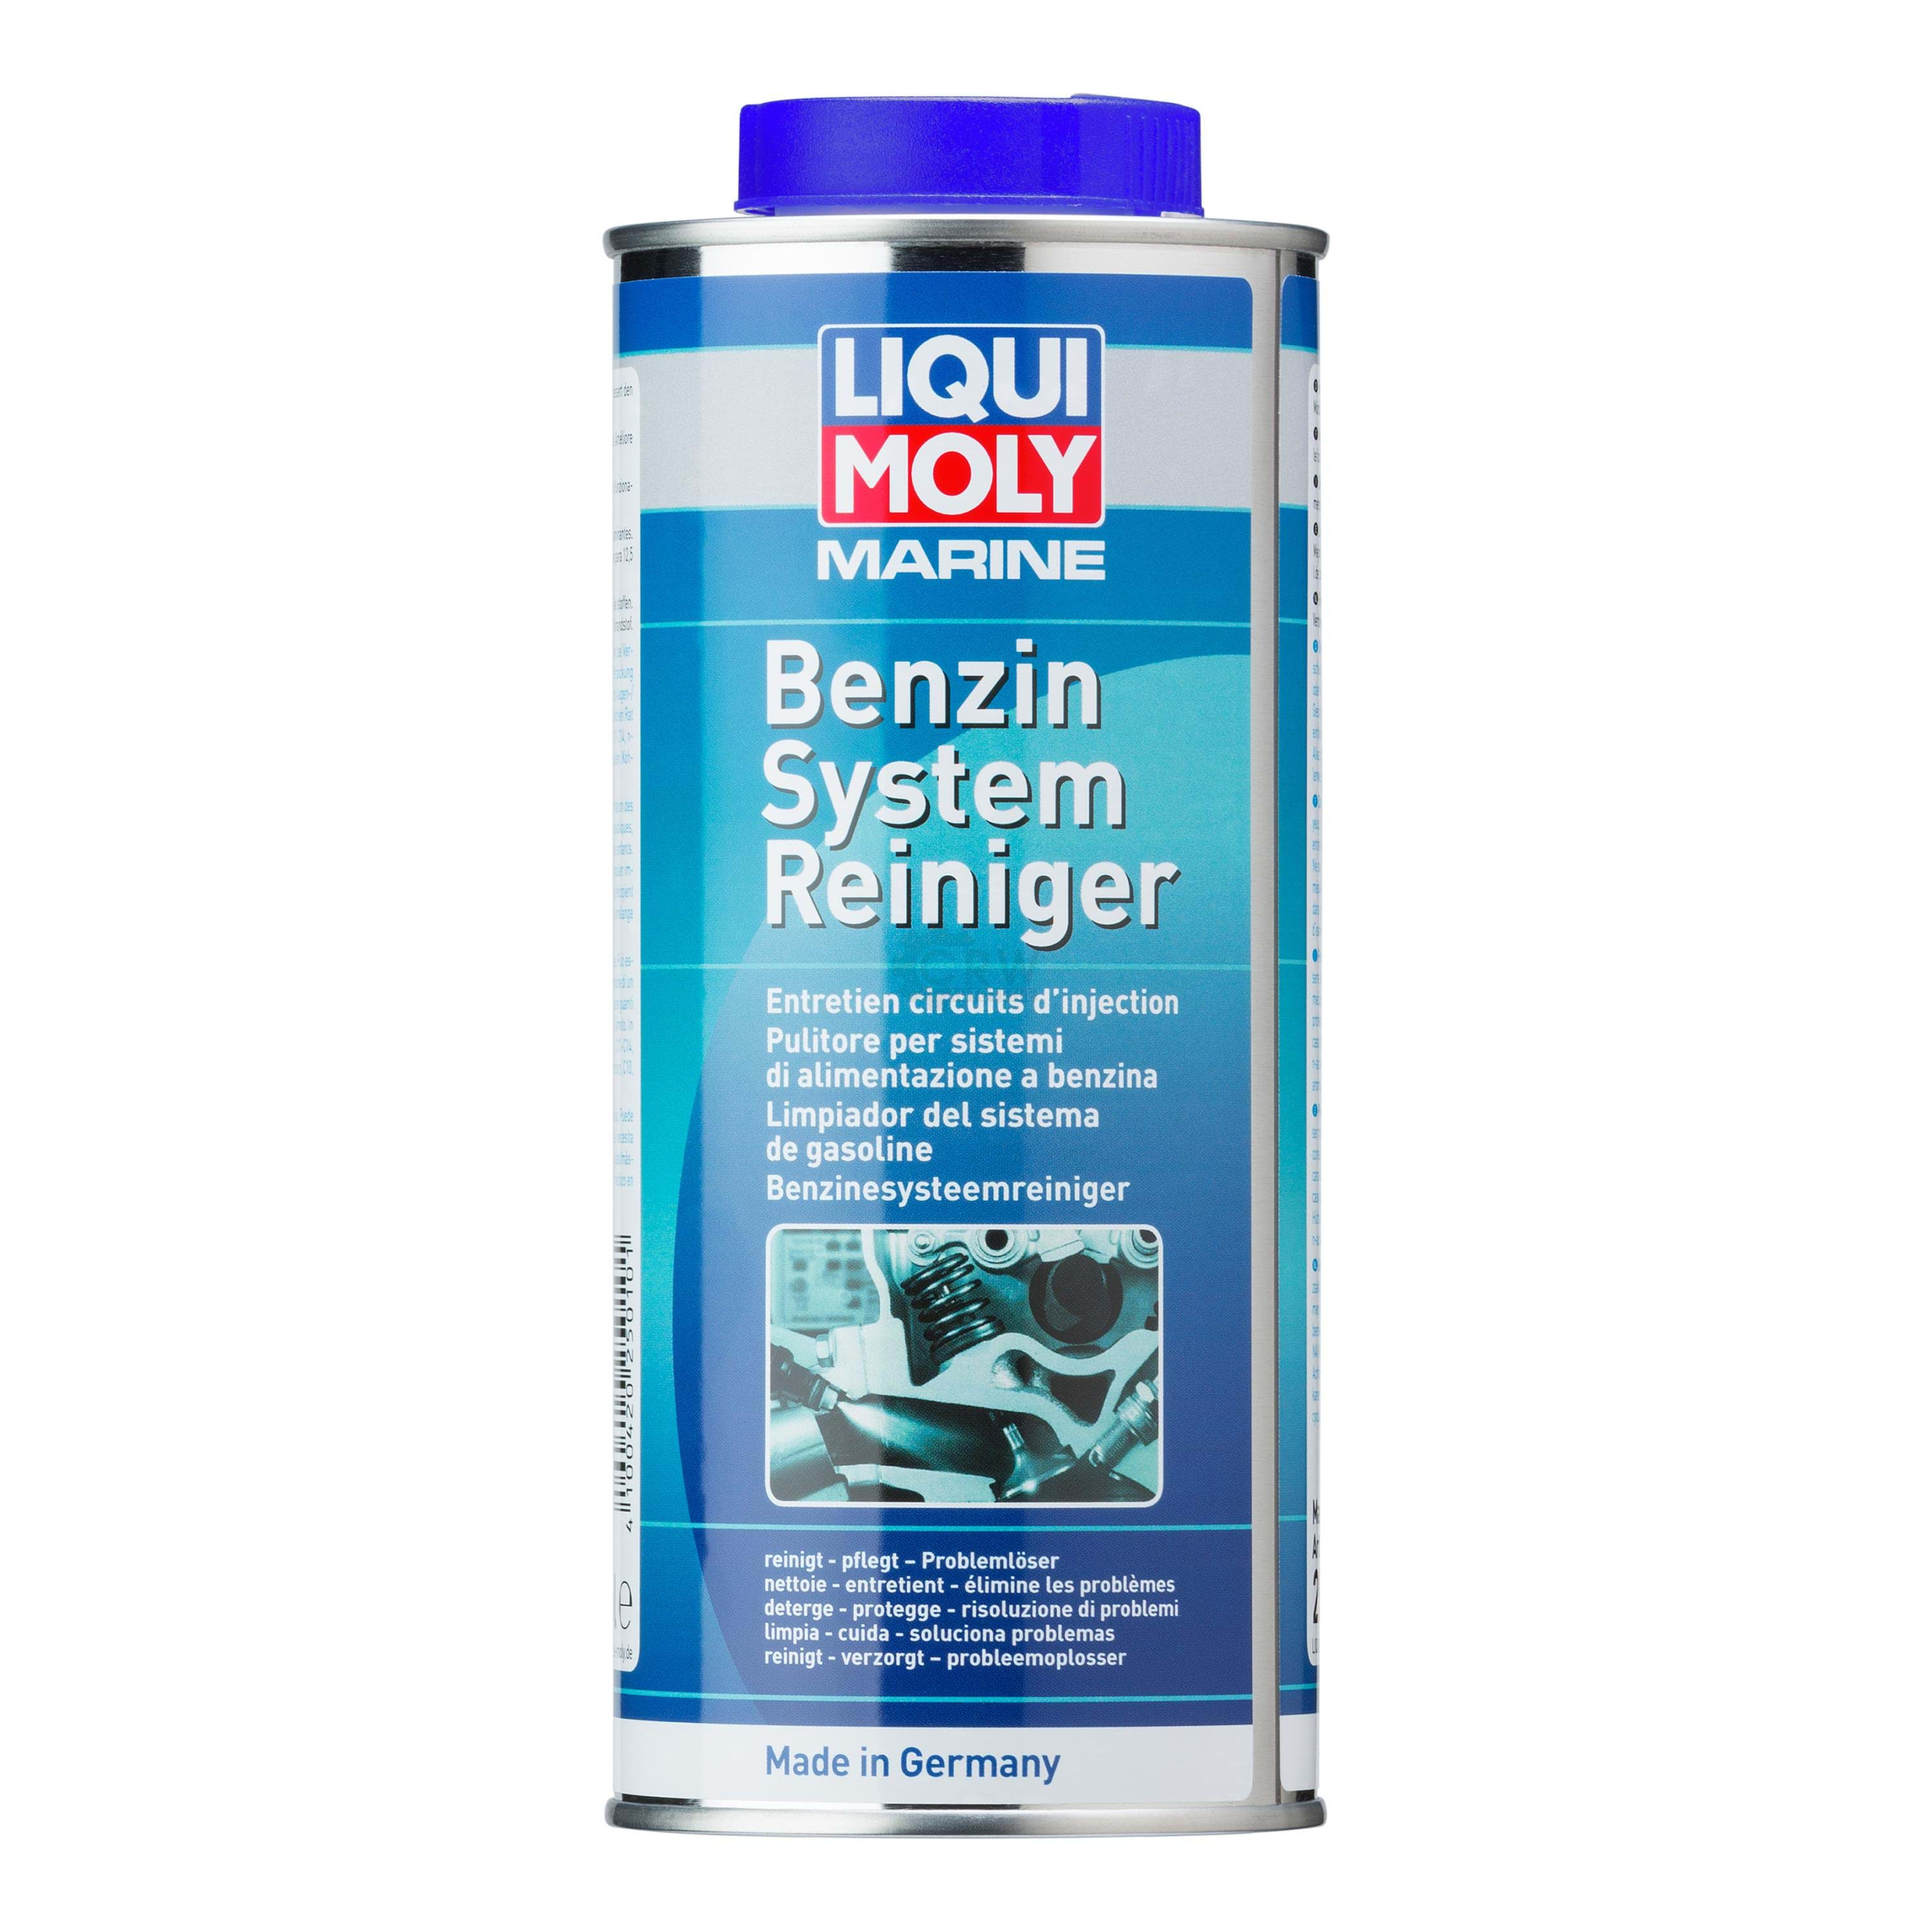 liqui moly 25010 marine benzin system reiniger fuel system cleaner 500 ml autoteile f r pkw. Black Bedroom Furniture Sets. Home Design Ideas